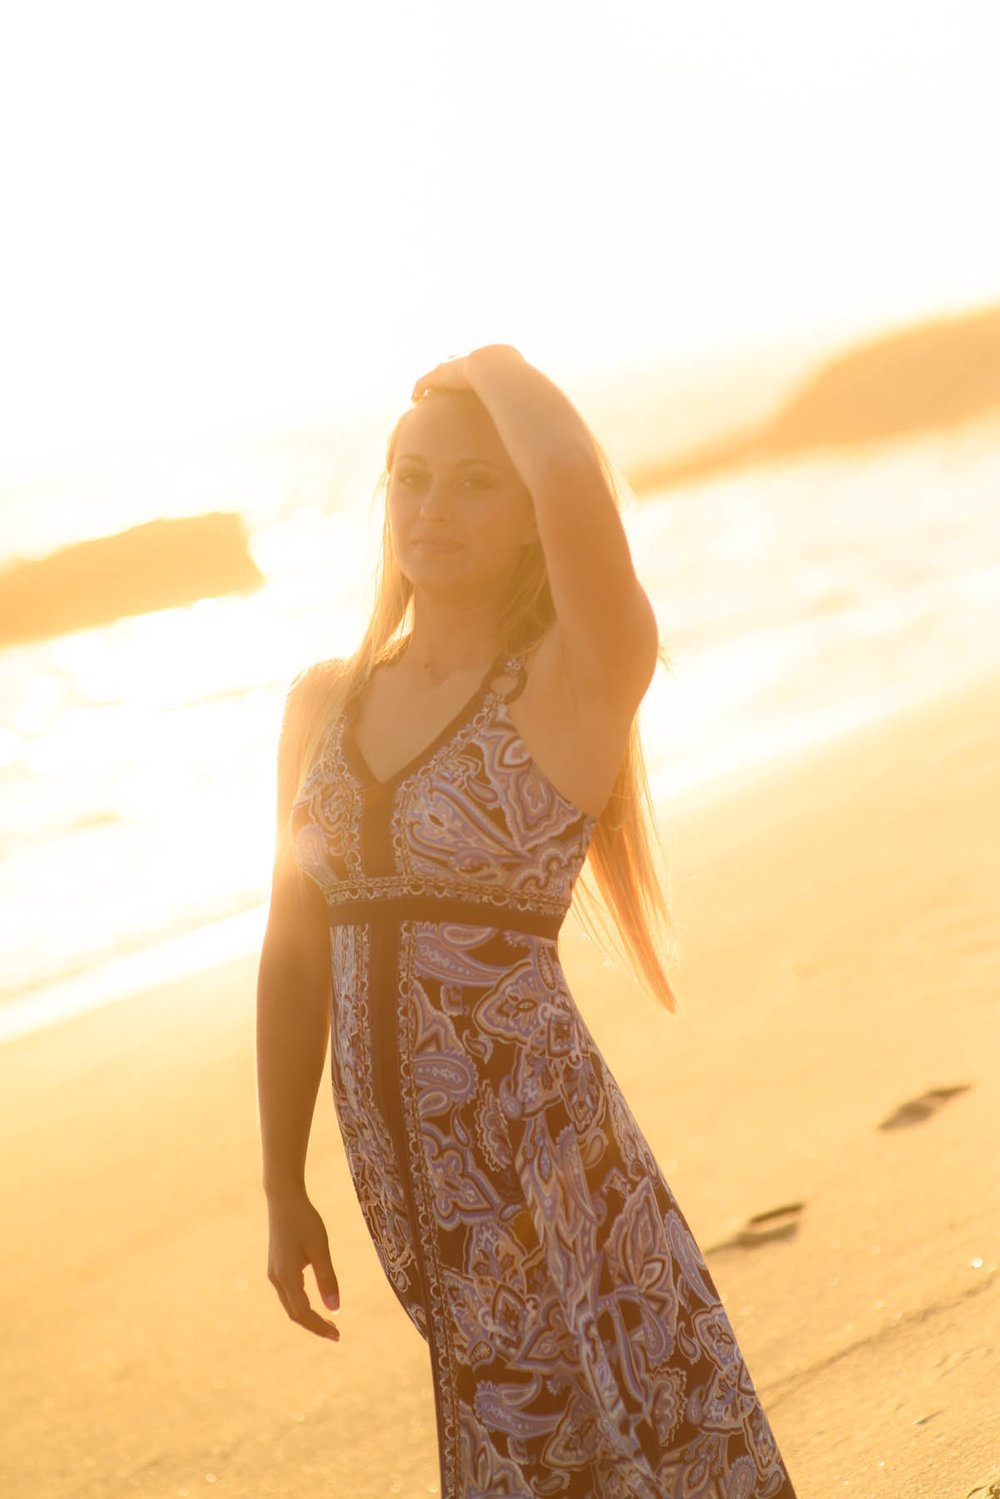 3125_d810a_Samantha_Panther_Beach_Santa_Cruz_Senior_Portrait_Photography.jpg